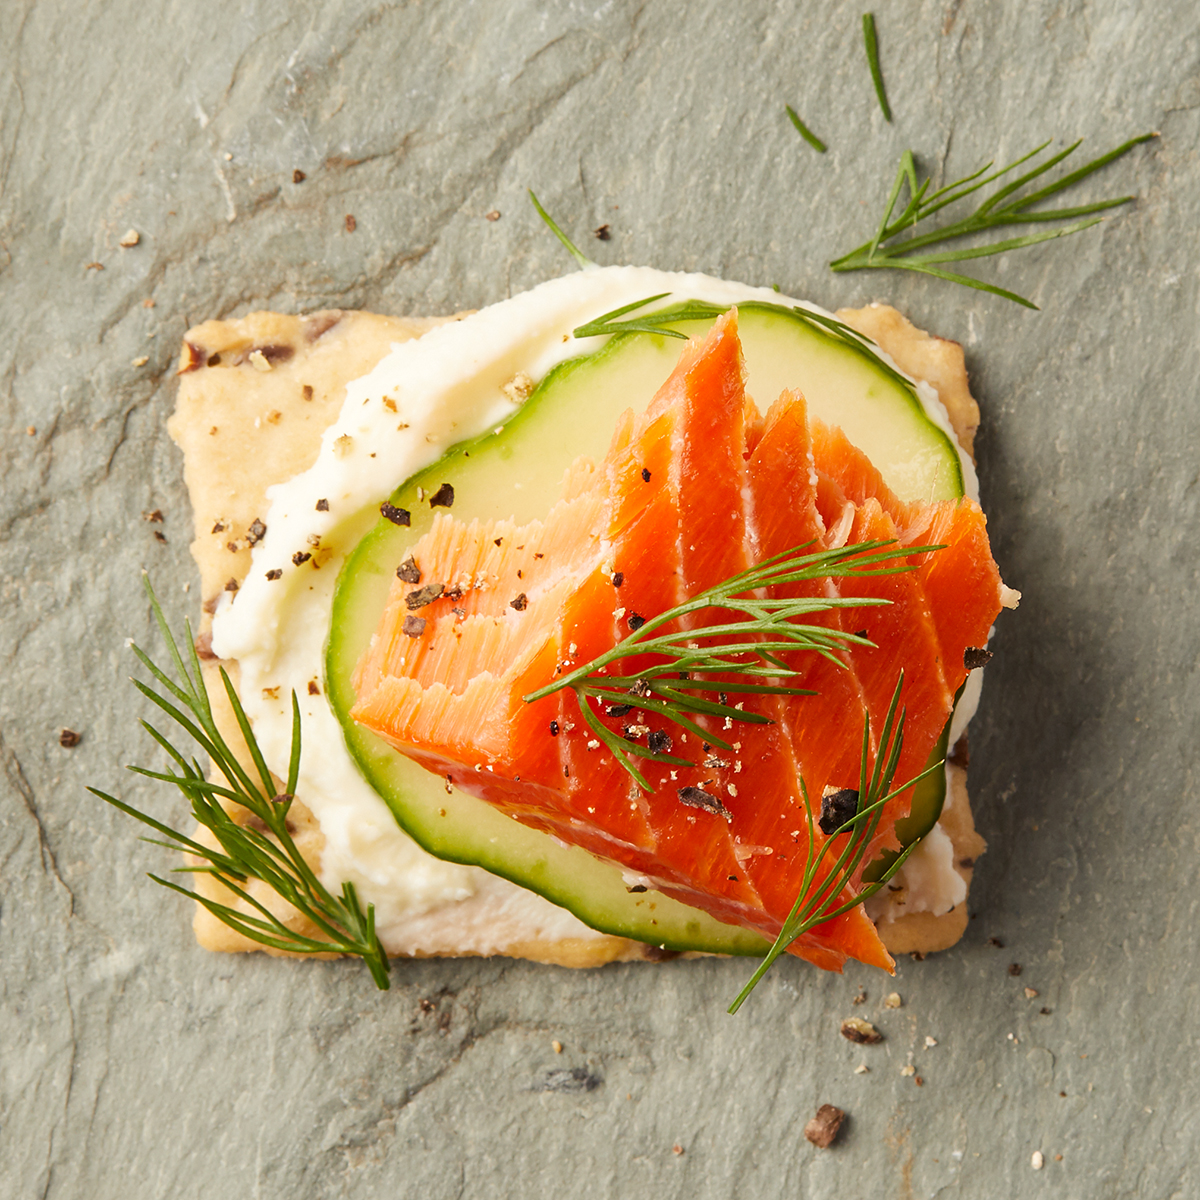 Cracker with crème fraiche, cucumber, smoked salmon, dill, and cracked pepper